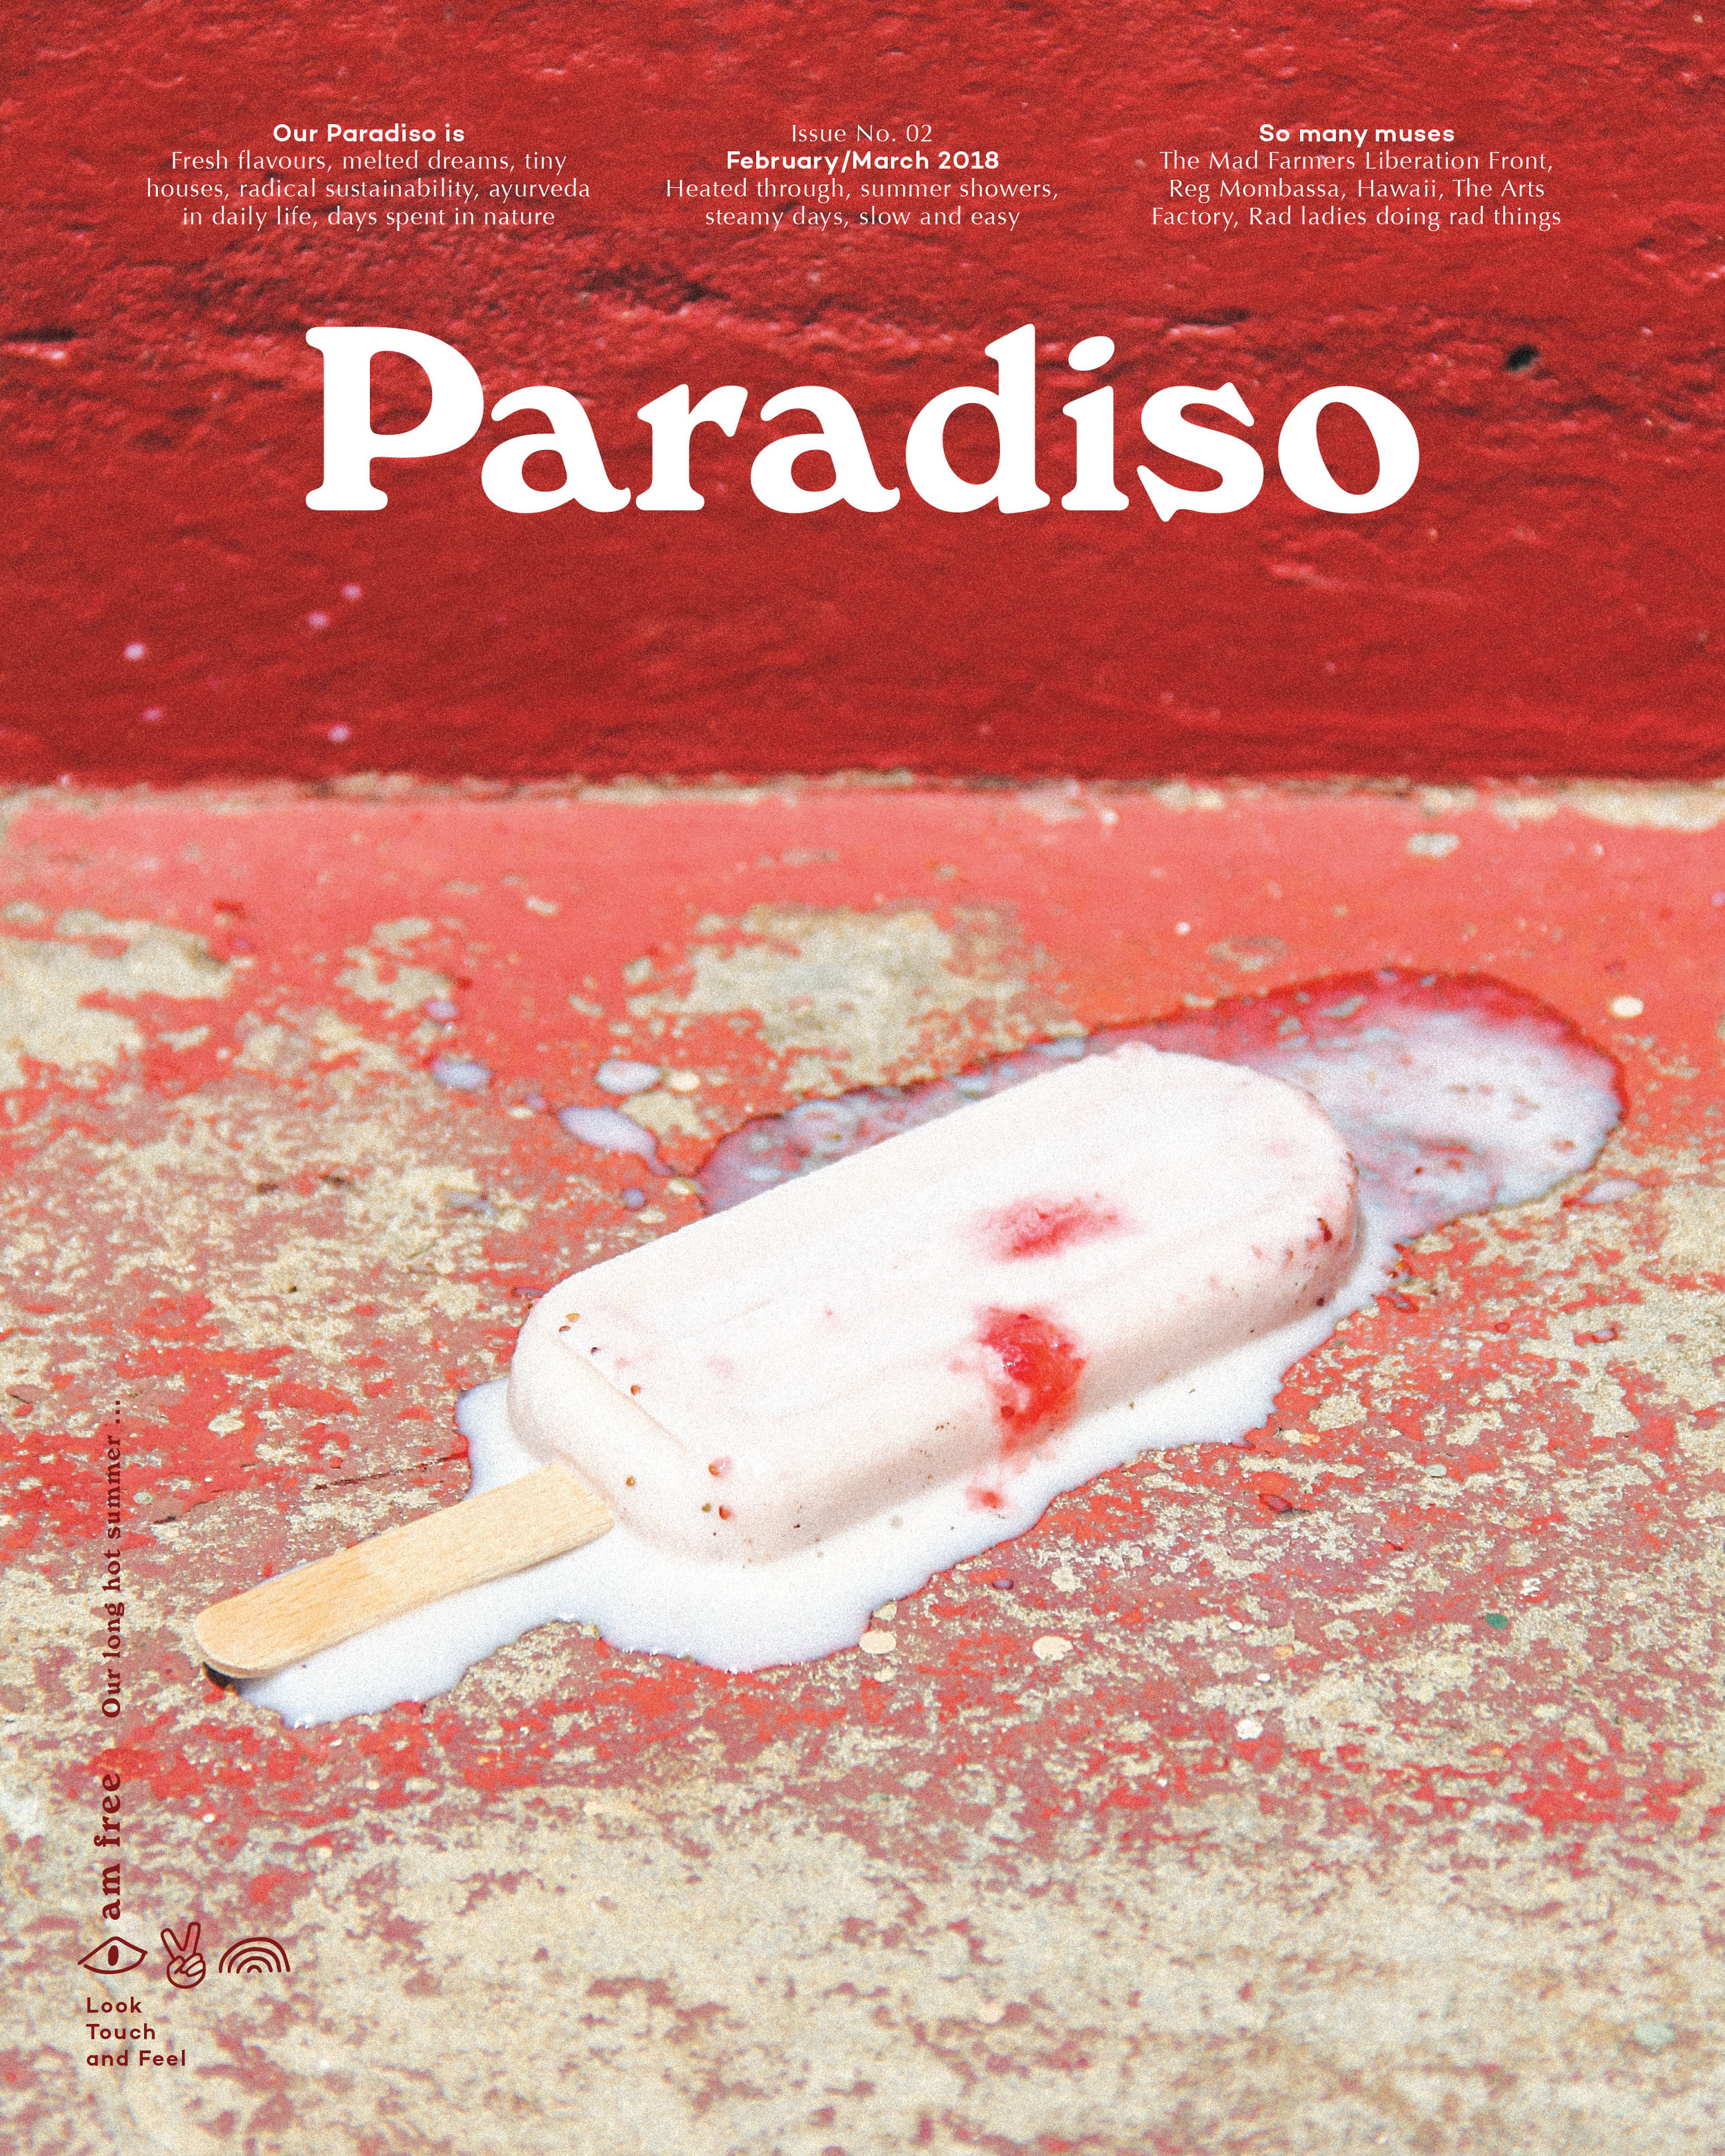 Paradiso Issue 02: Our long hot summer ...